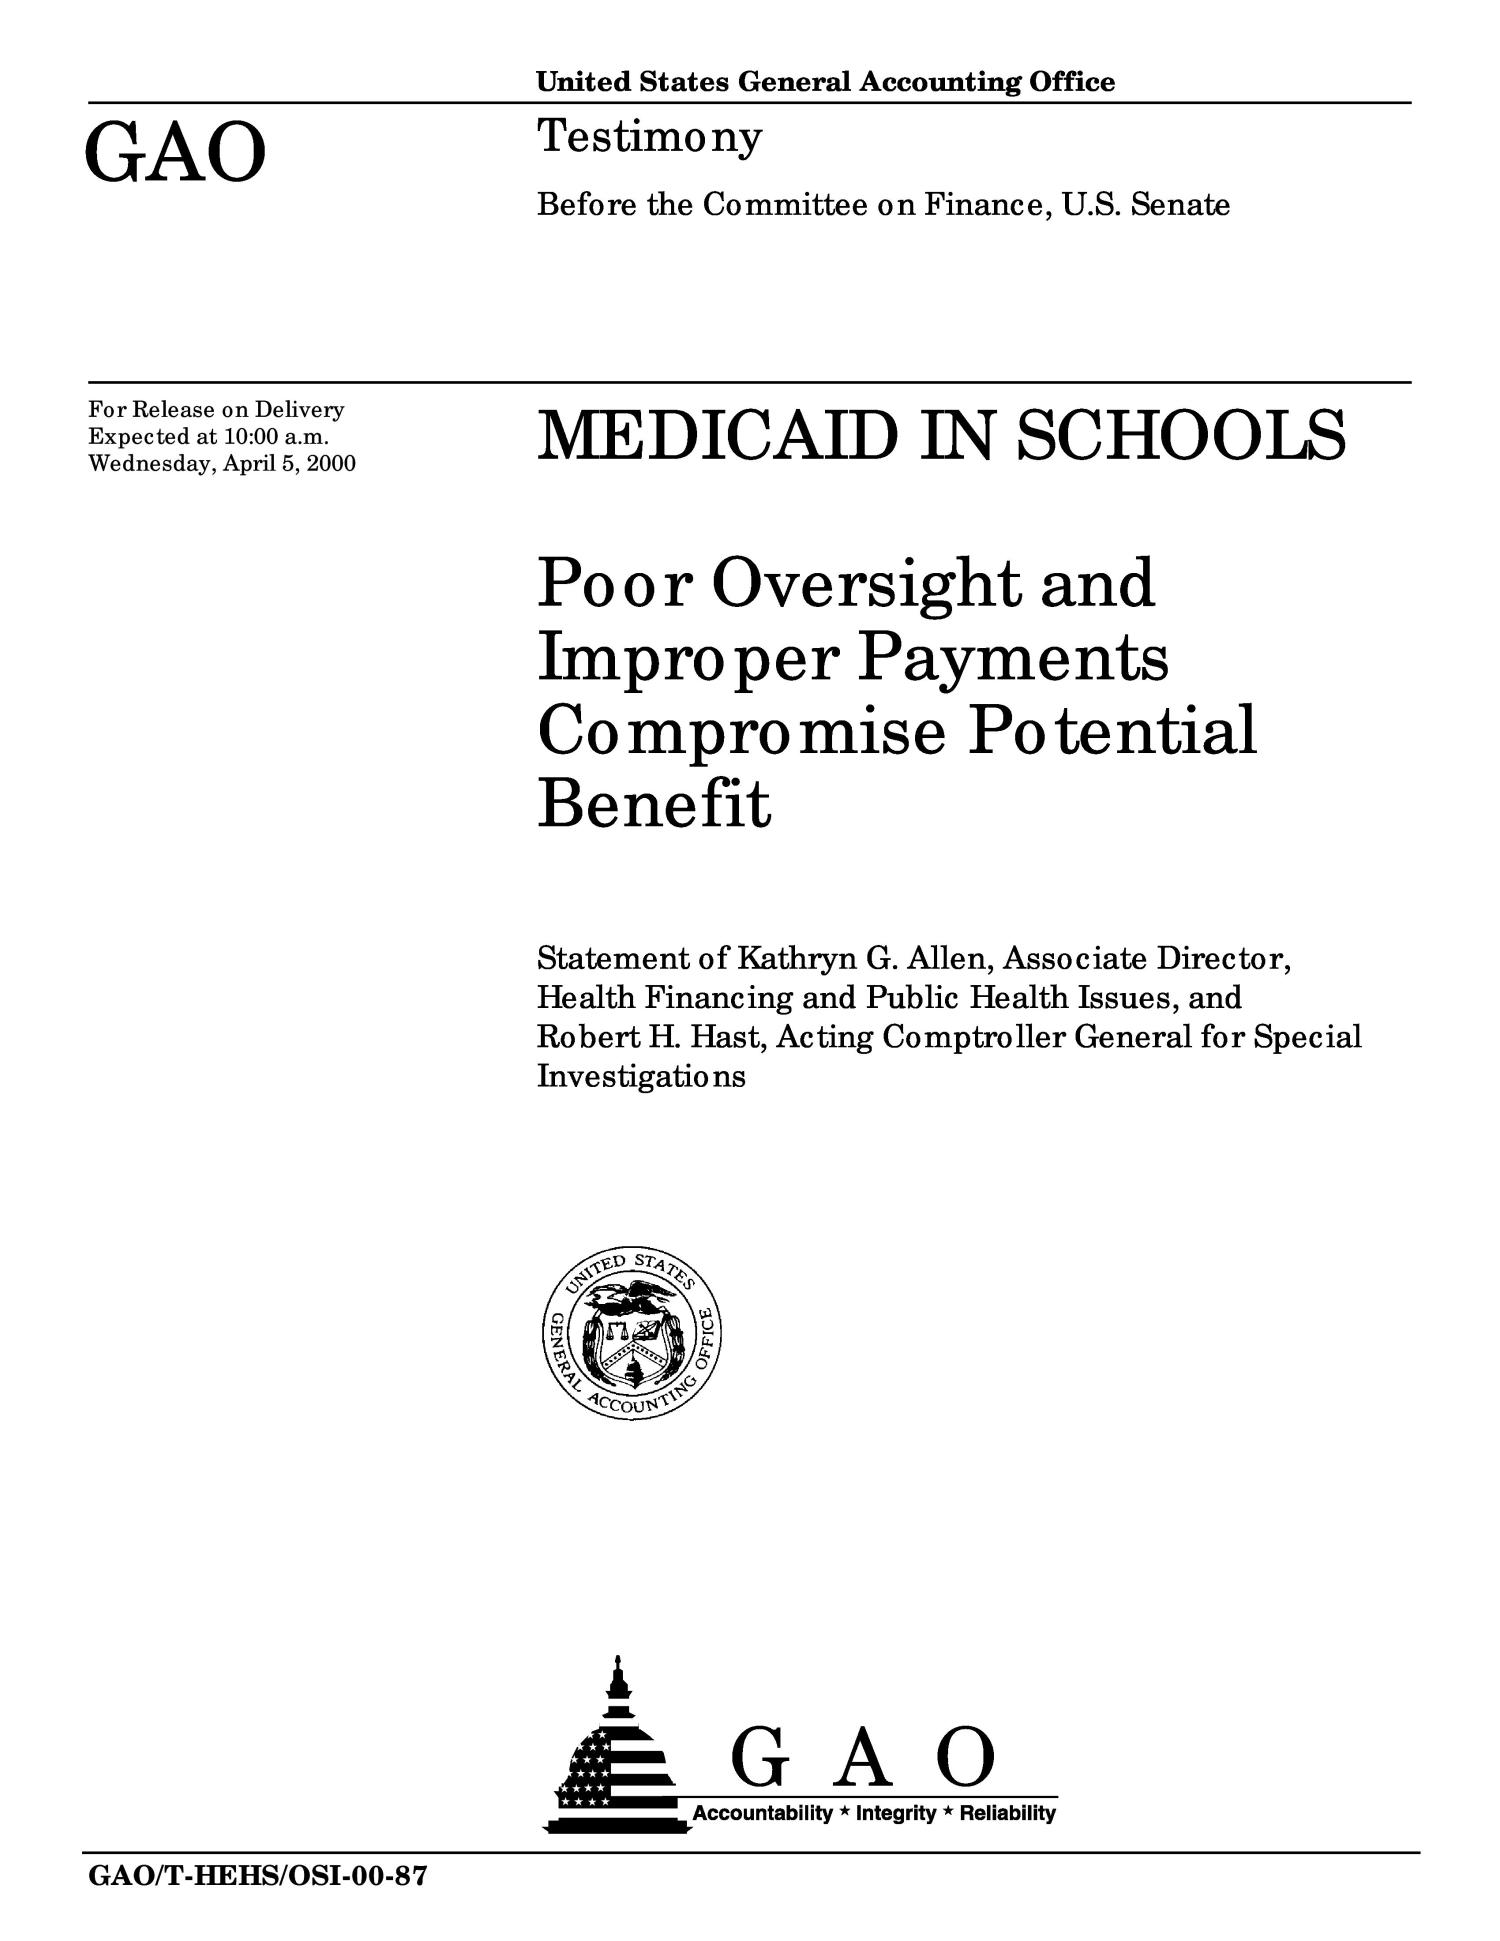 Medicaid in Schools: Poor Oversight and Improper Payments Compromise Potential Benefit                                                                                                      [Sequence #]: 1 of 24